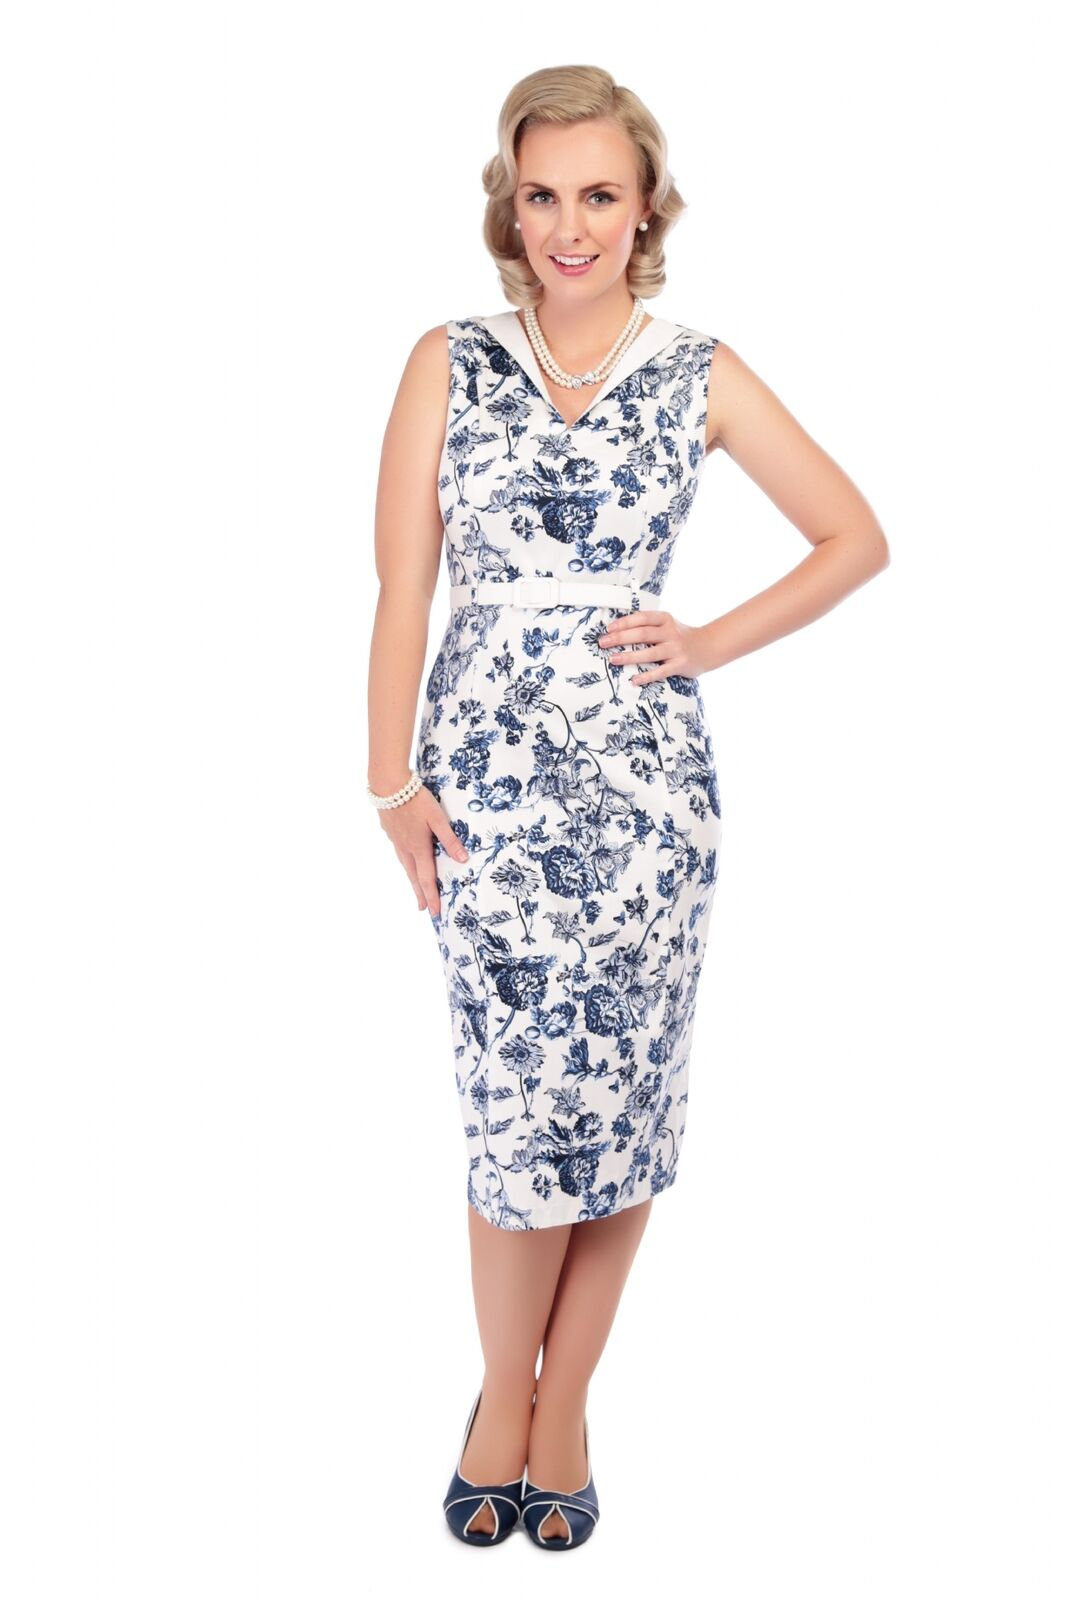 COLLECTIF VINTAGE TOILE HELEN PENCIL DRESS SZ 8-22 WHITE blueE FRENCH WALLPAPER